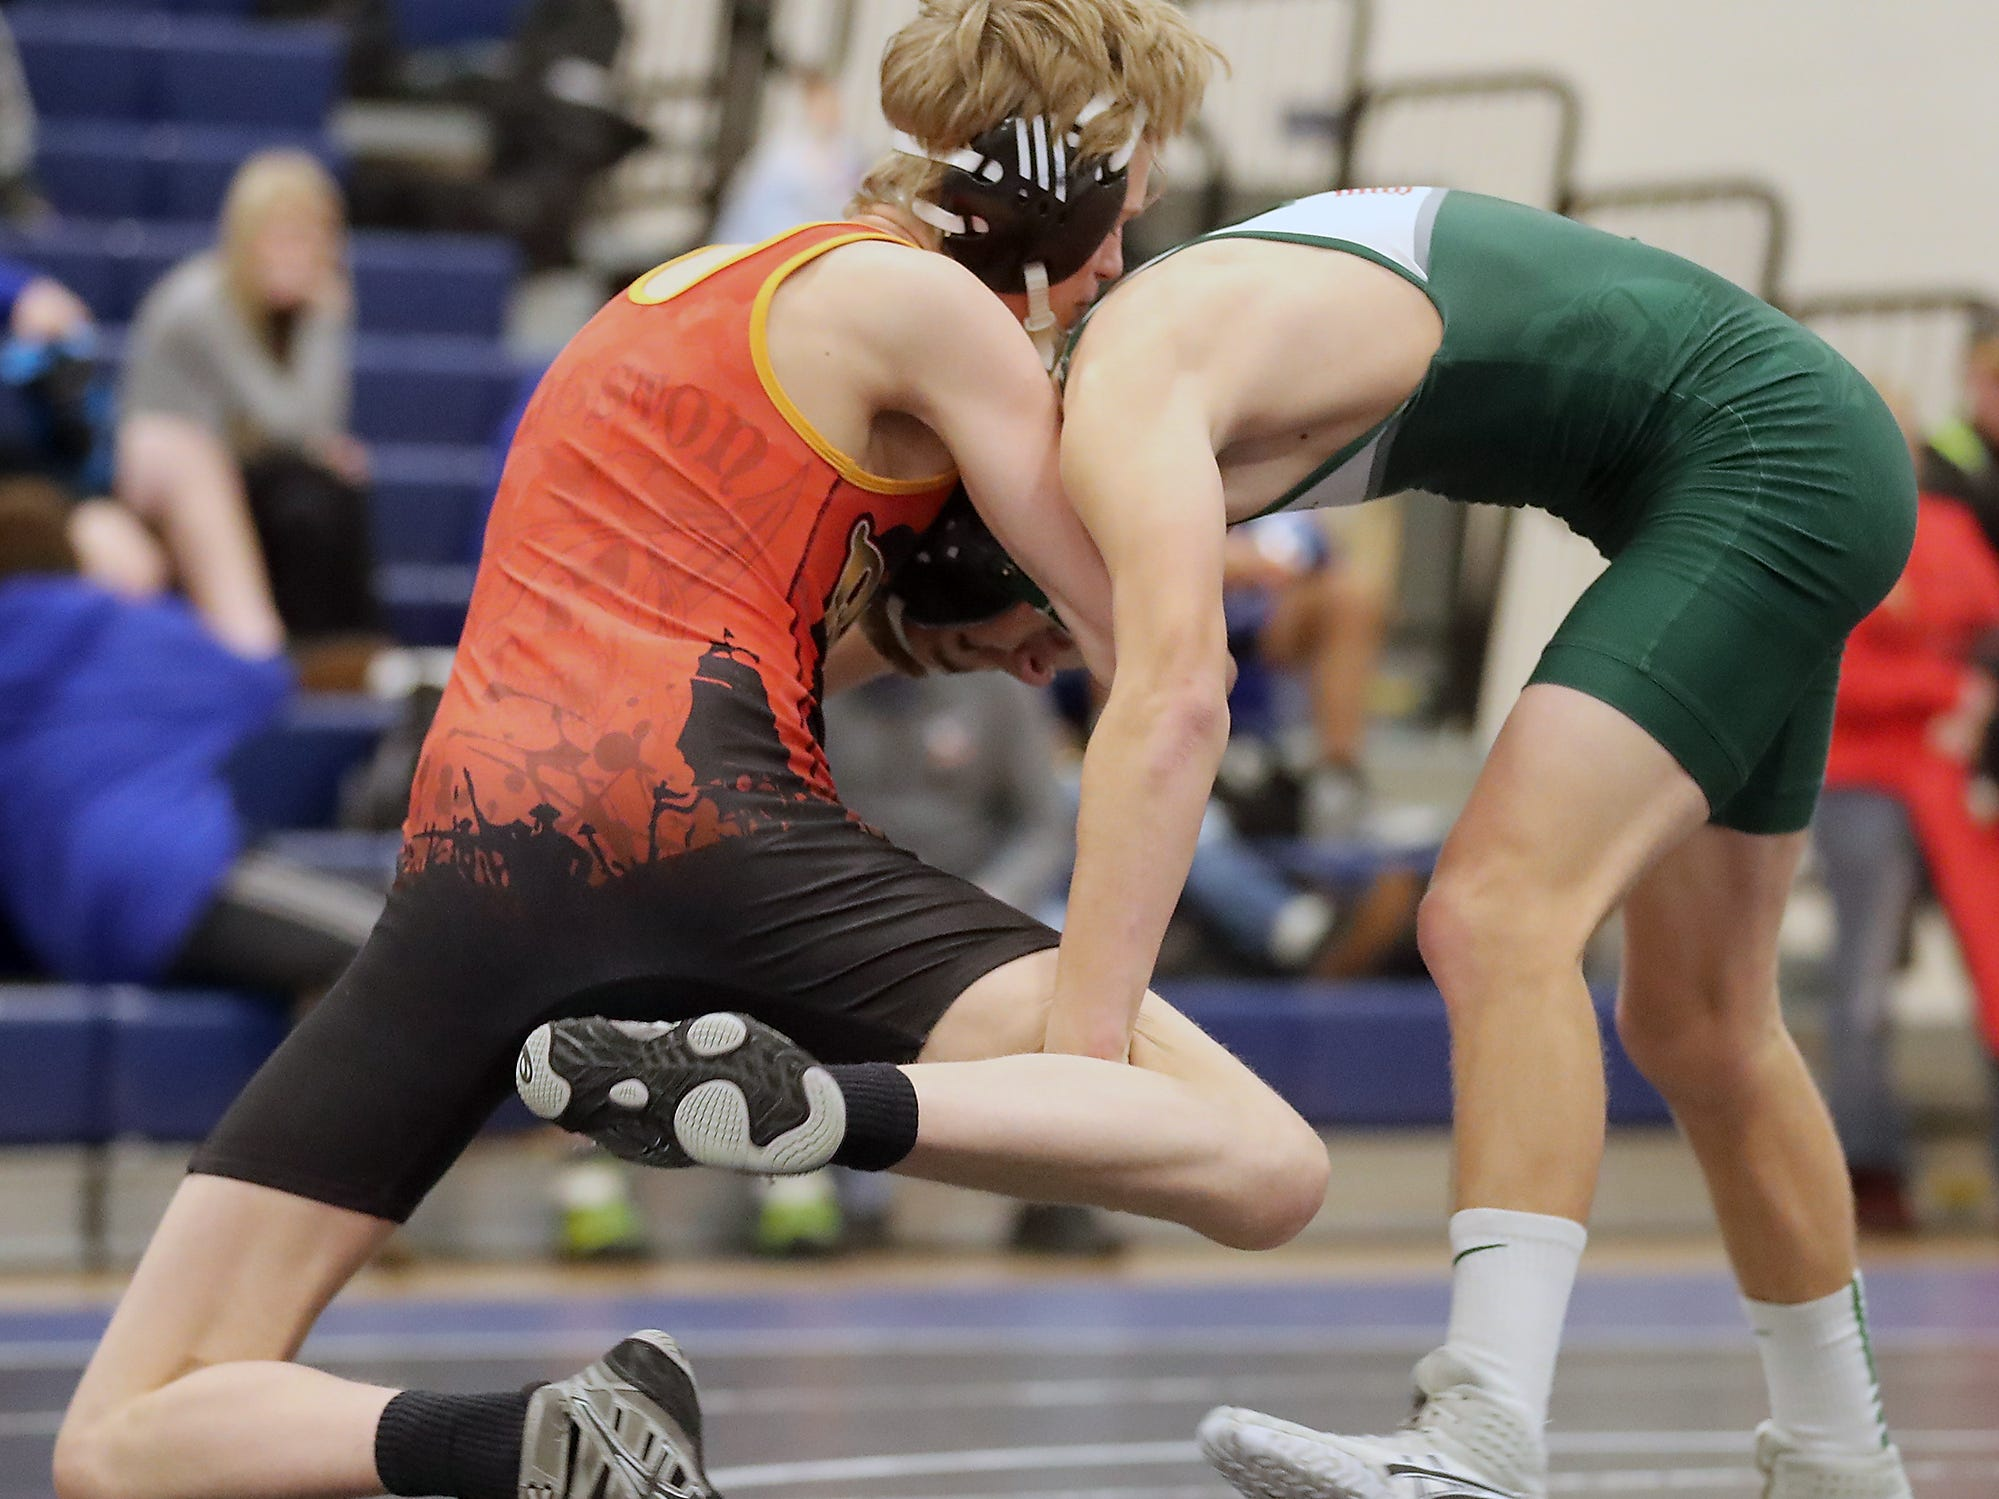 Kingston's Dalton Tellinghuisen (left) grapples with Port Angeles's Daniel Busclen for the final of the 126-pound weight class at the North Mason Classic in Belfair on Saturday, December 22, 2018.